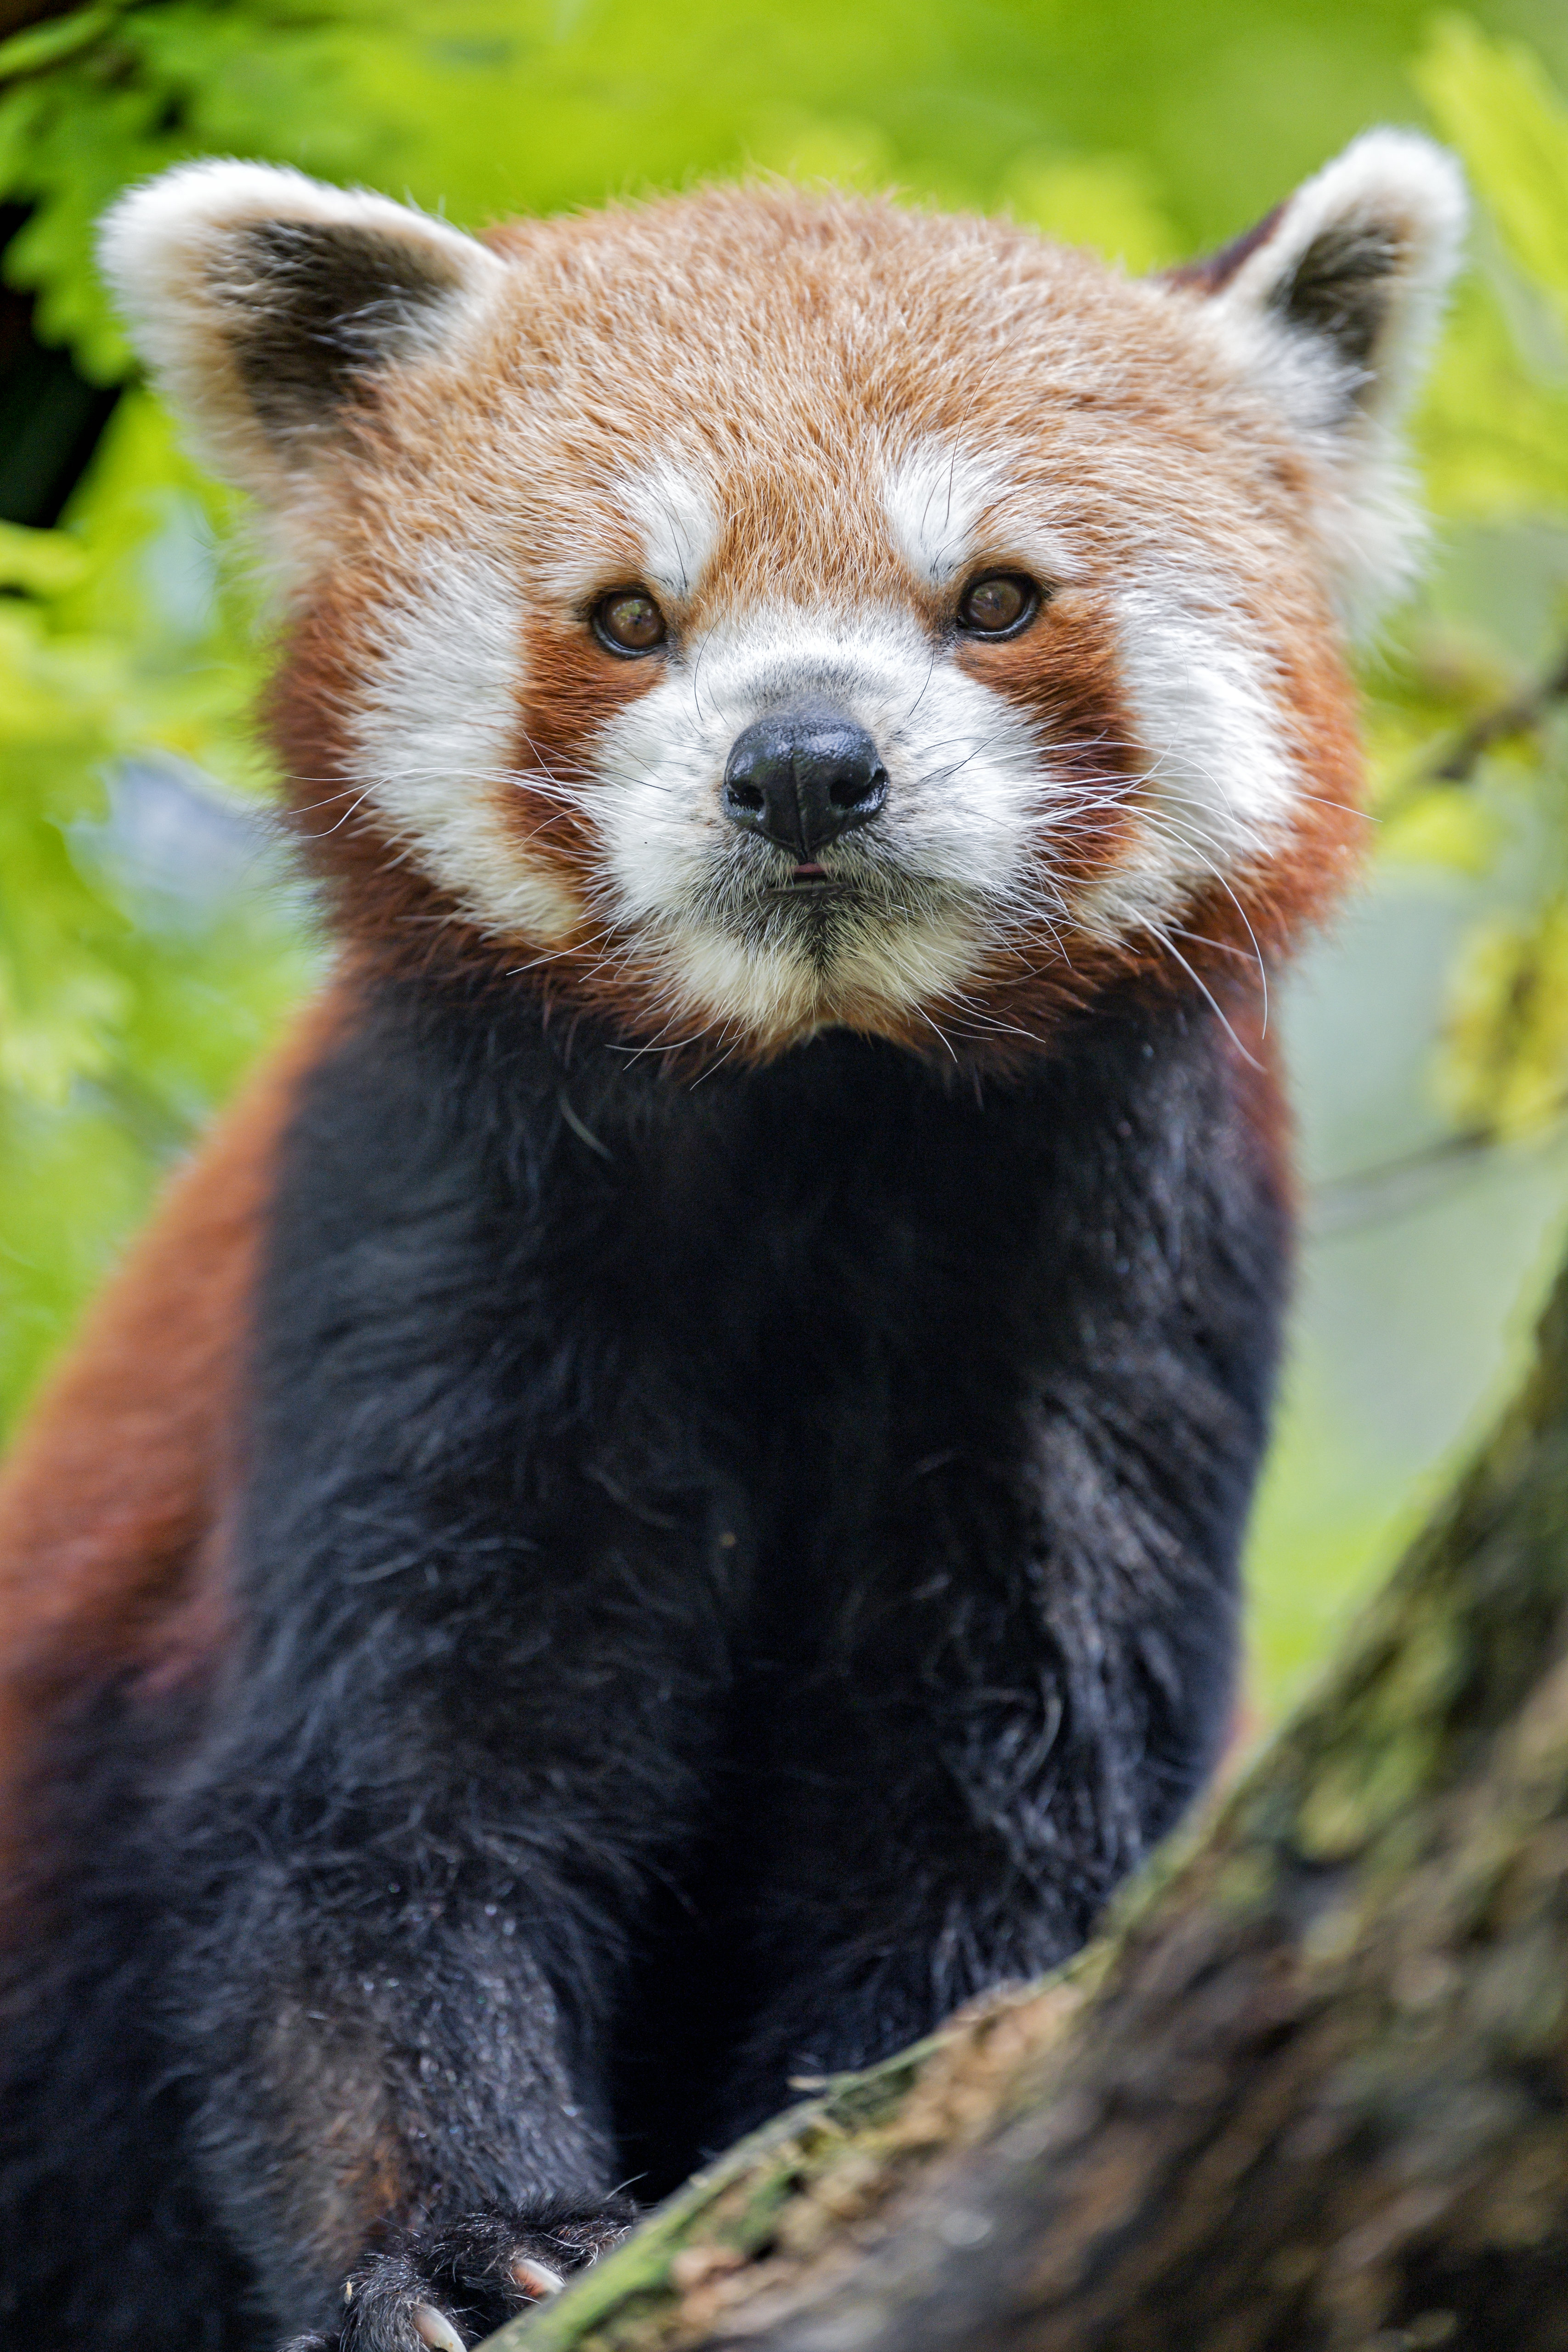 112755 download wallpaper Animals, Red Panda, Panda, Muzzle, Animal screensavers and pictures for free